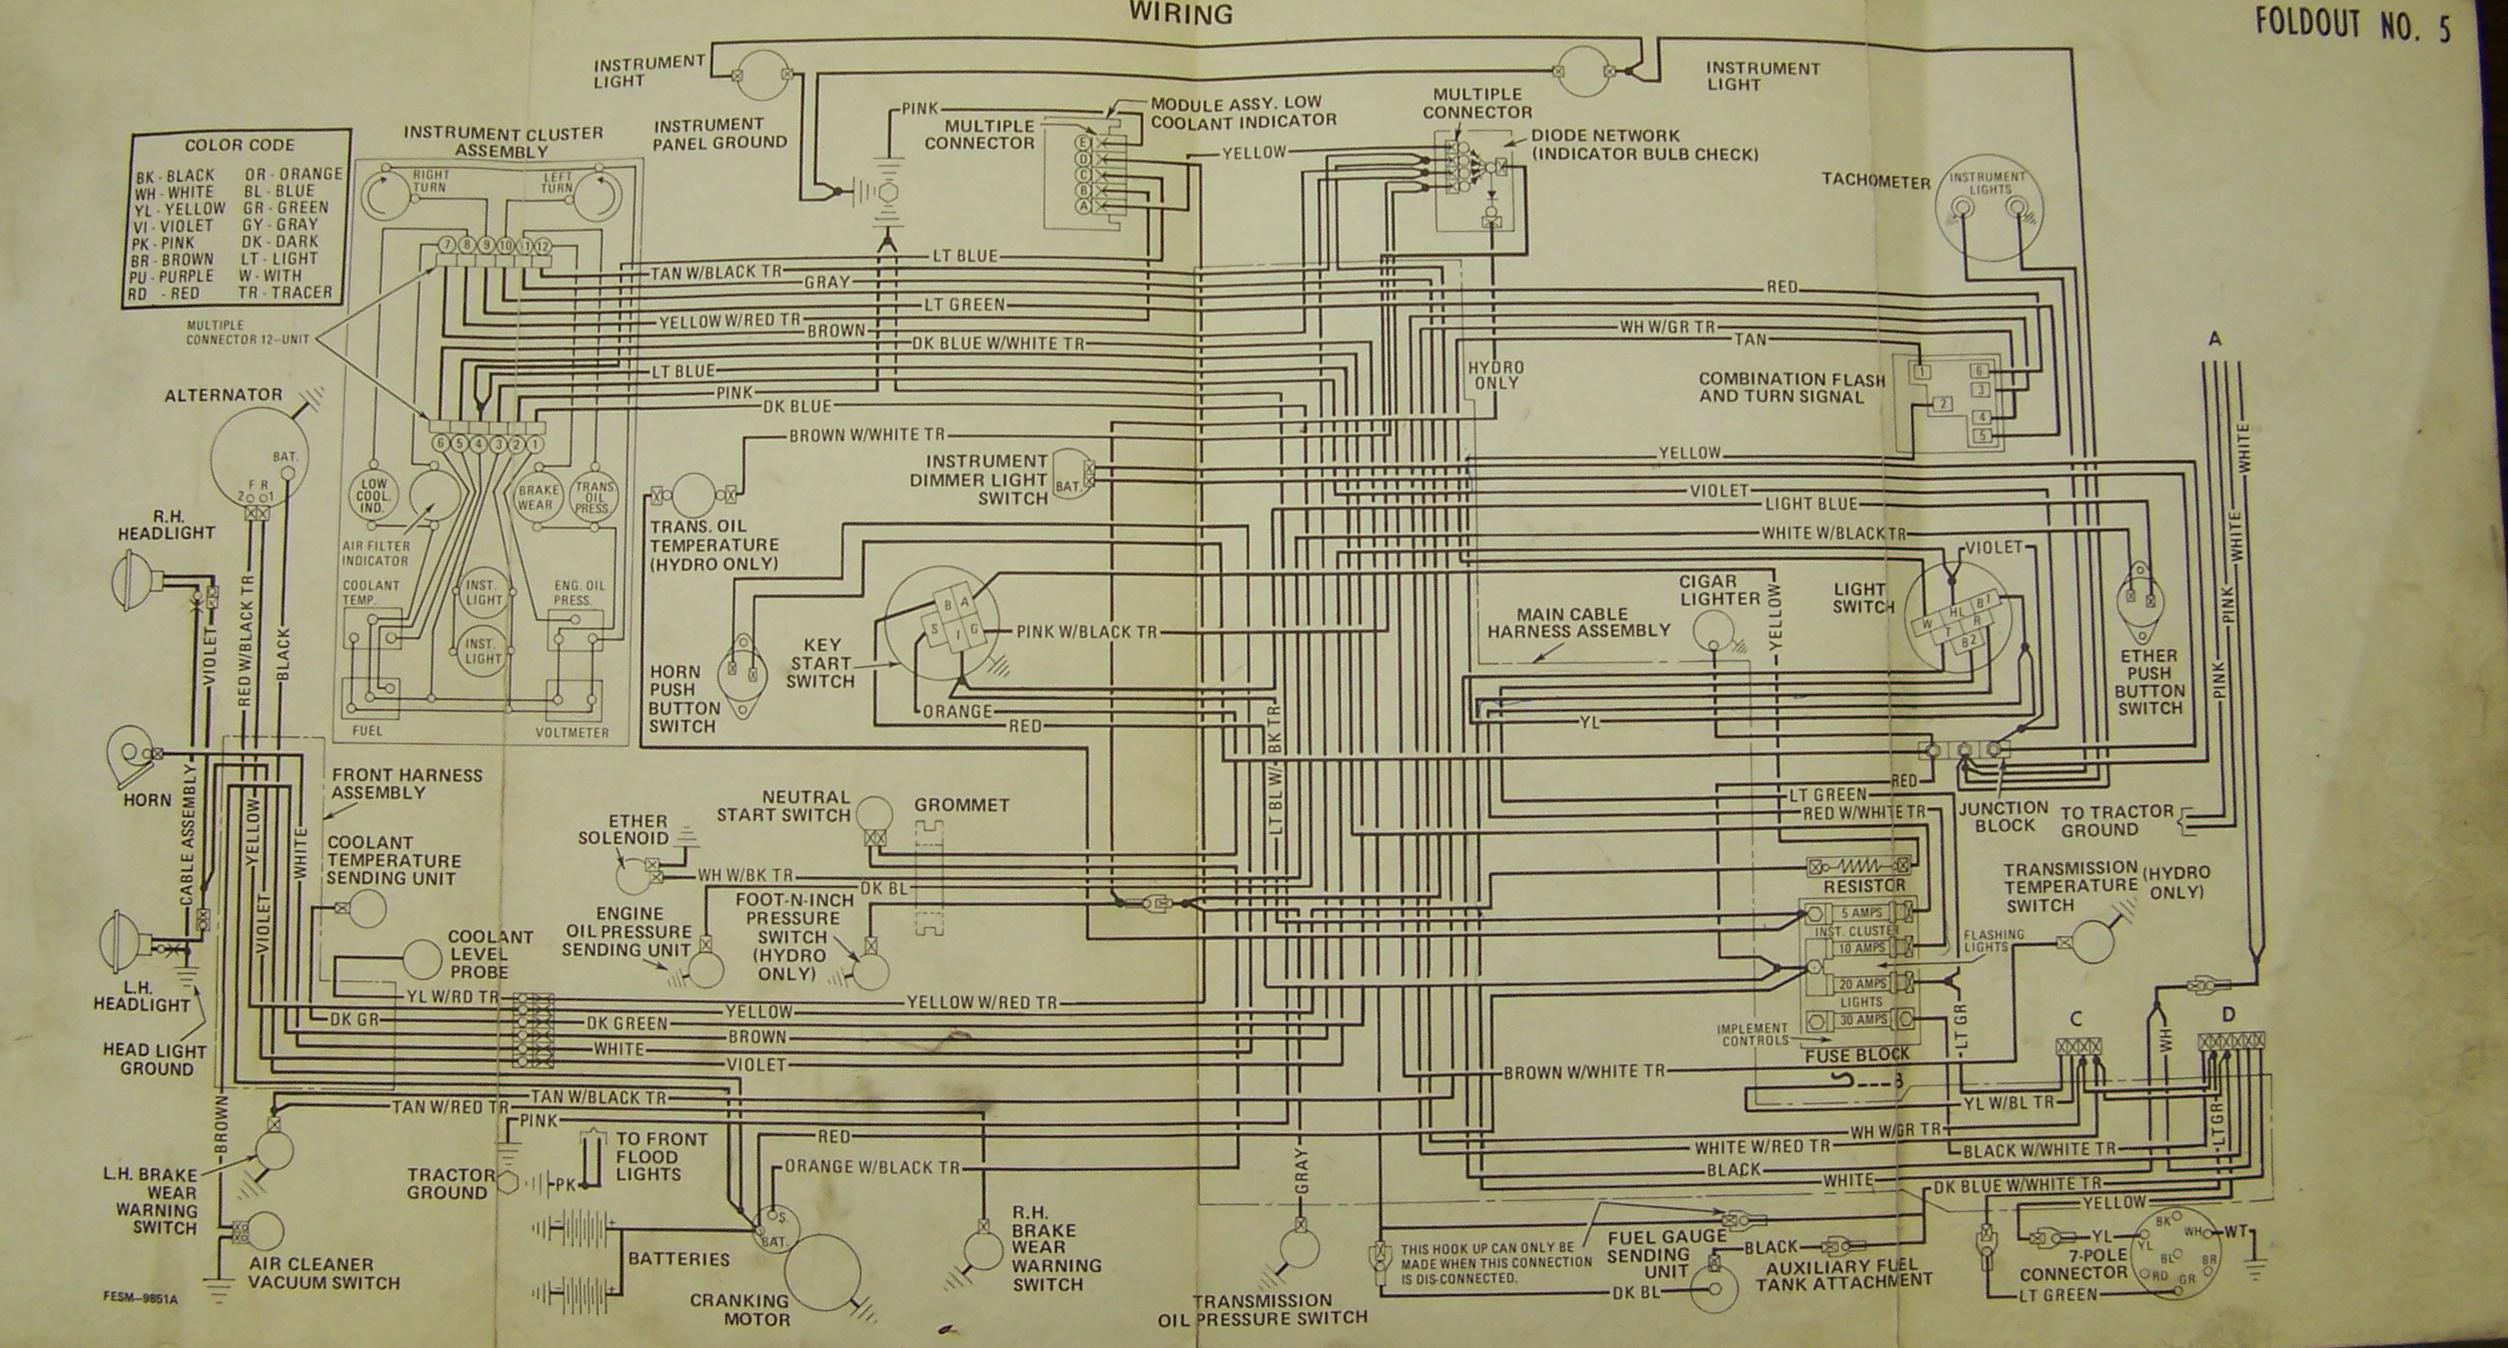 Ih Tractor Wiring Diagram Archive Of Automotive Cub Cadet 129 Carter Gruenewald Co Inc Farmall Electrical Rh Cngco Com 454